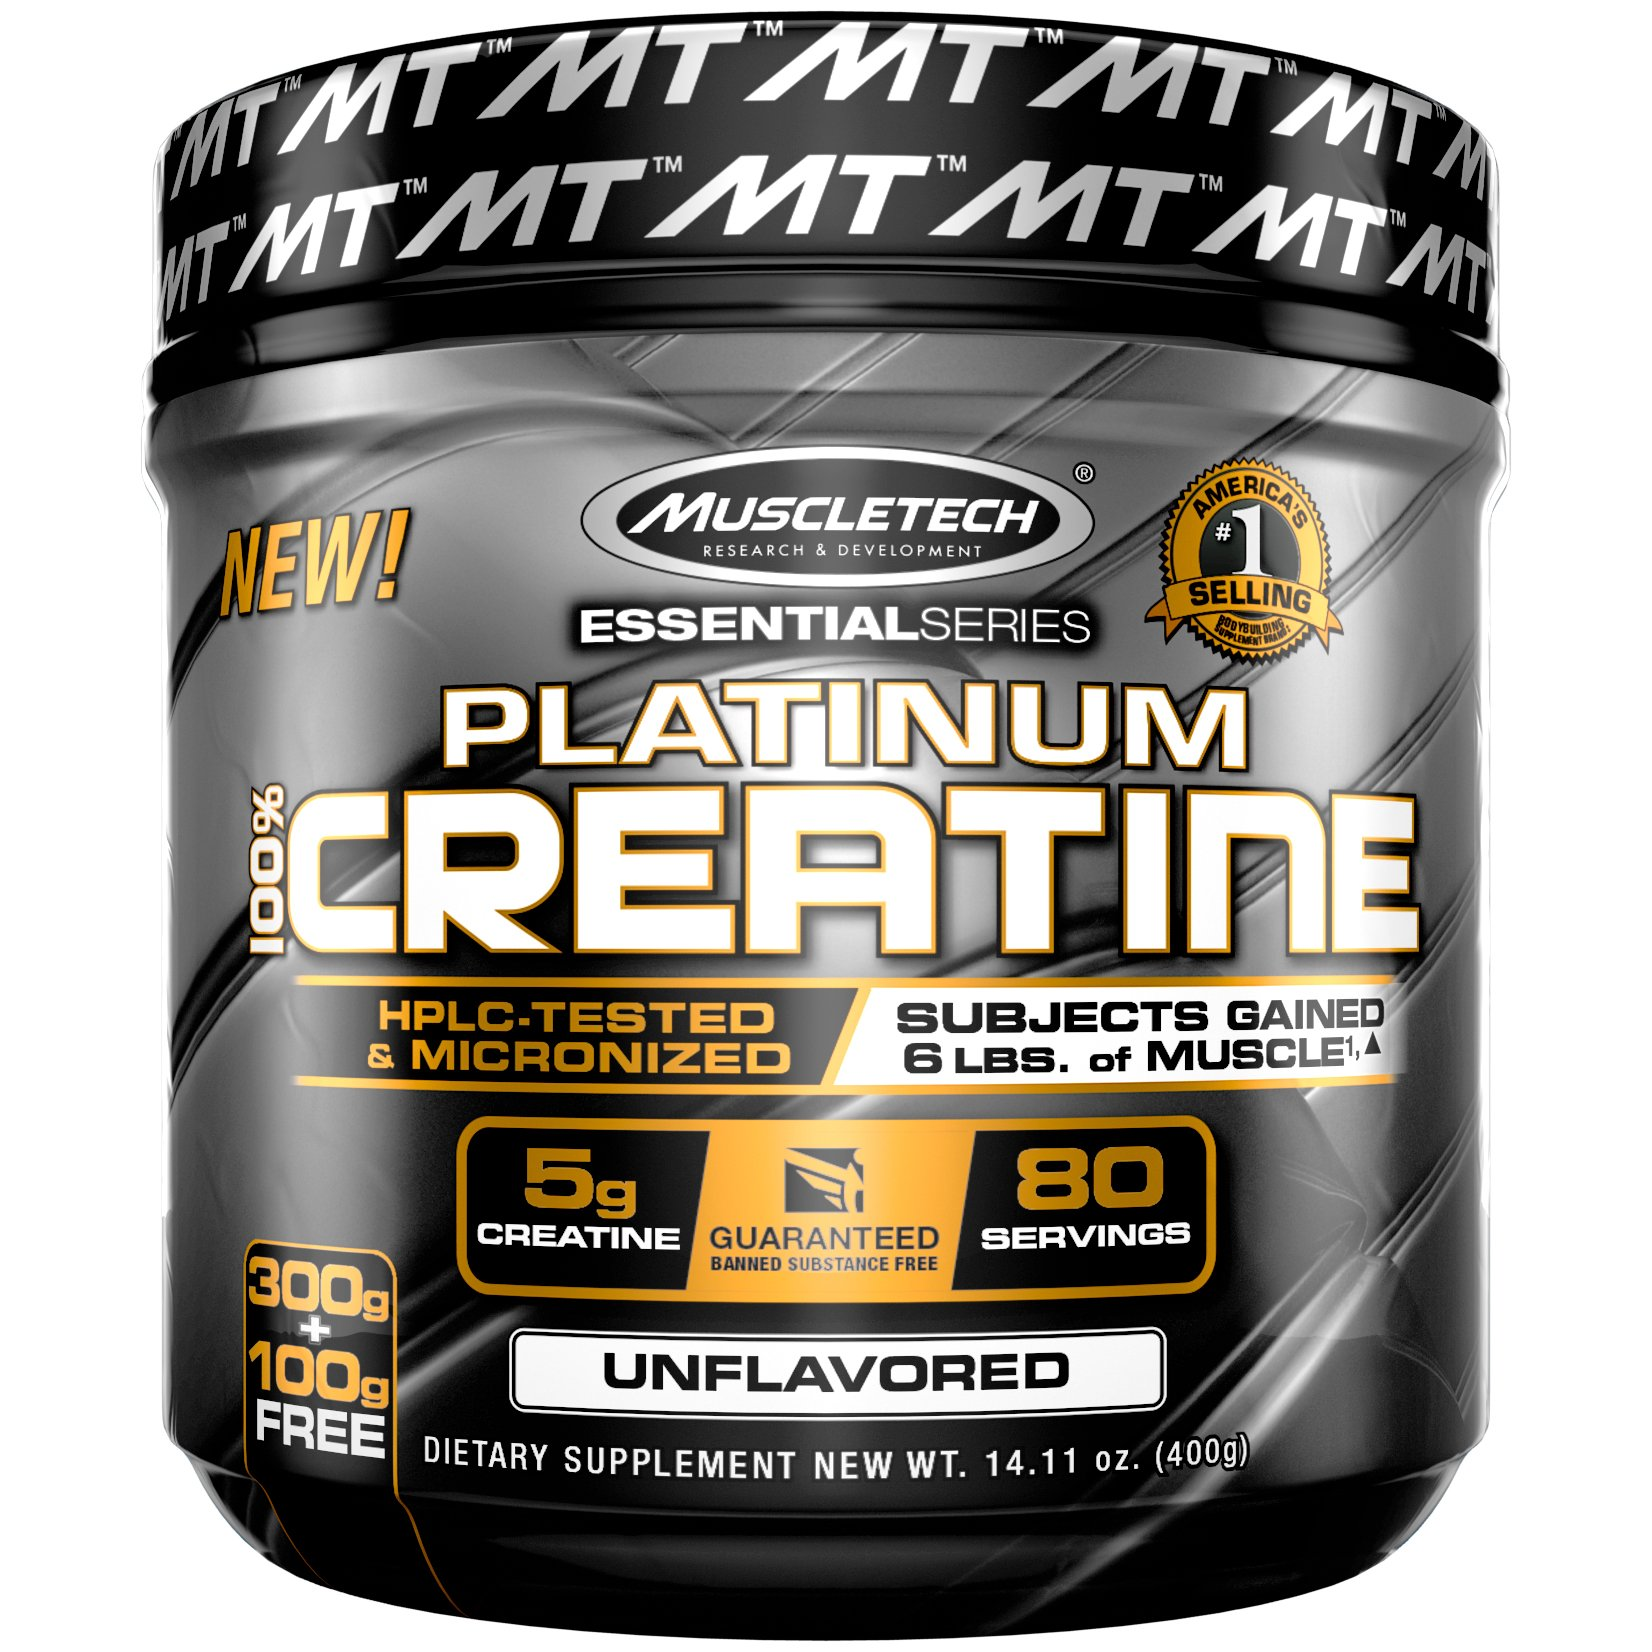 MuscleTech Platinum 100% Creatine, Ultra-Pure Micronized Creatine Powder, Unflavored, 14.11 Oz (400 Grams)